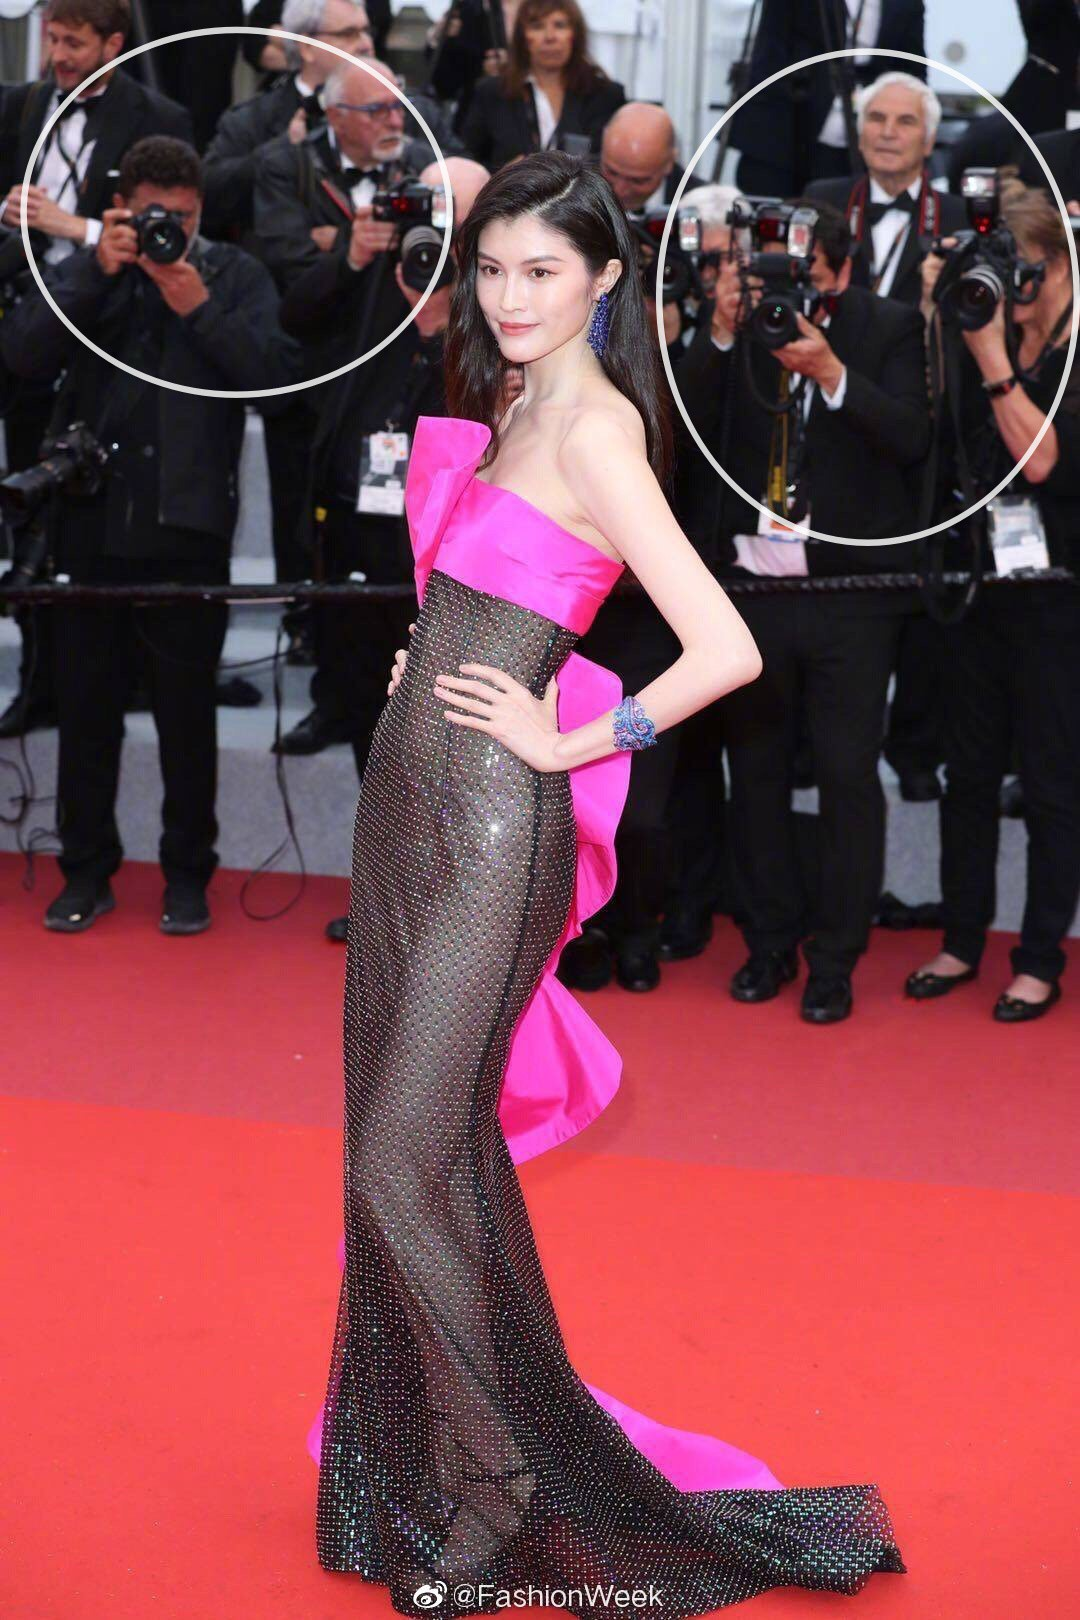 Sui-He-3 Sui He's wearing the shocking costumes on Cannes red carpet